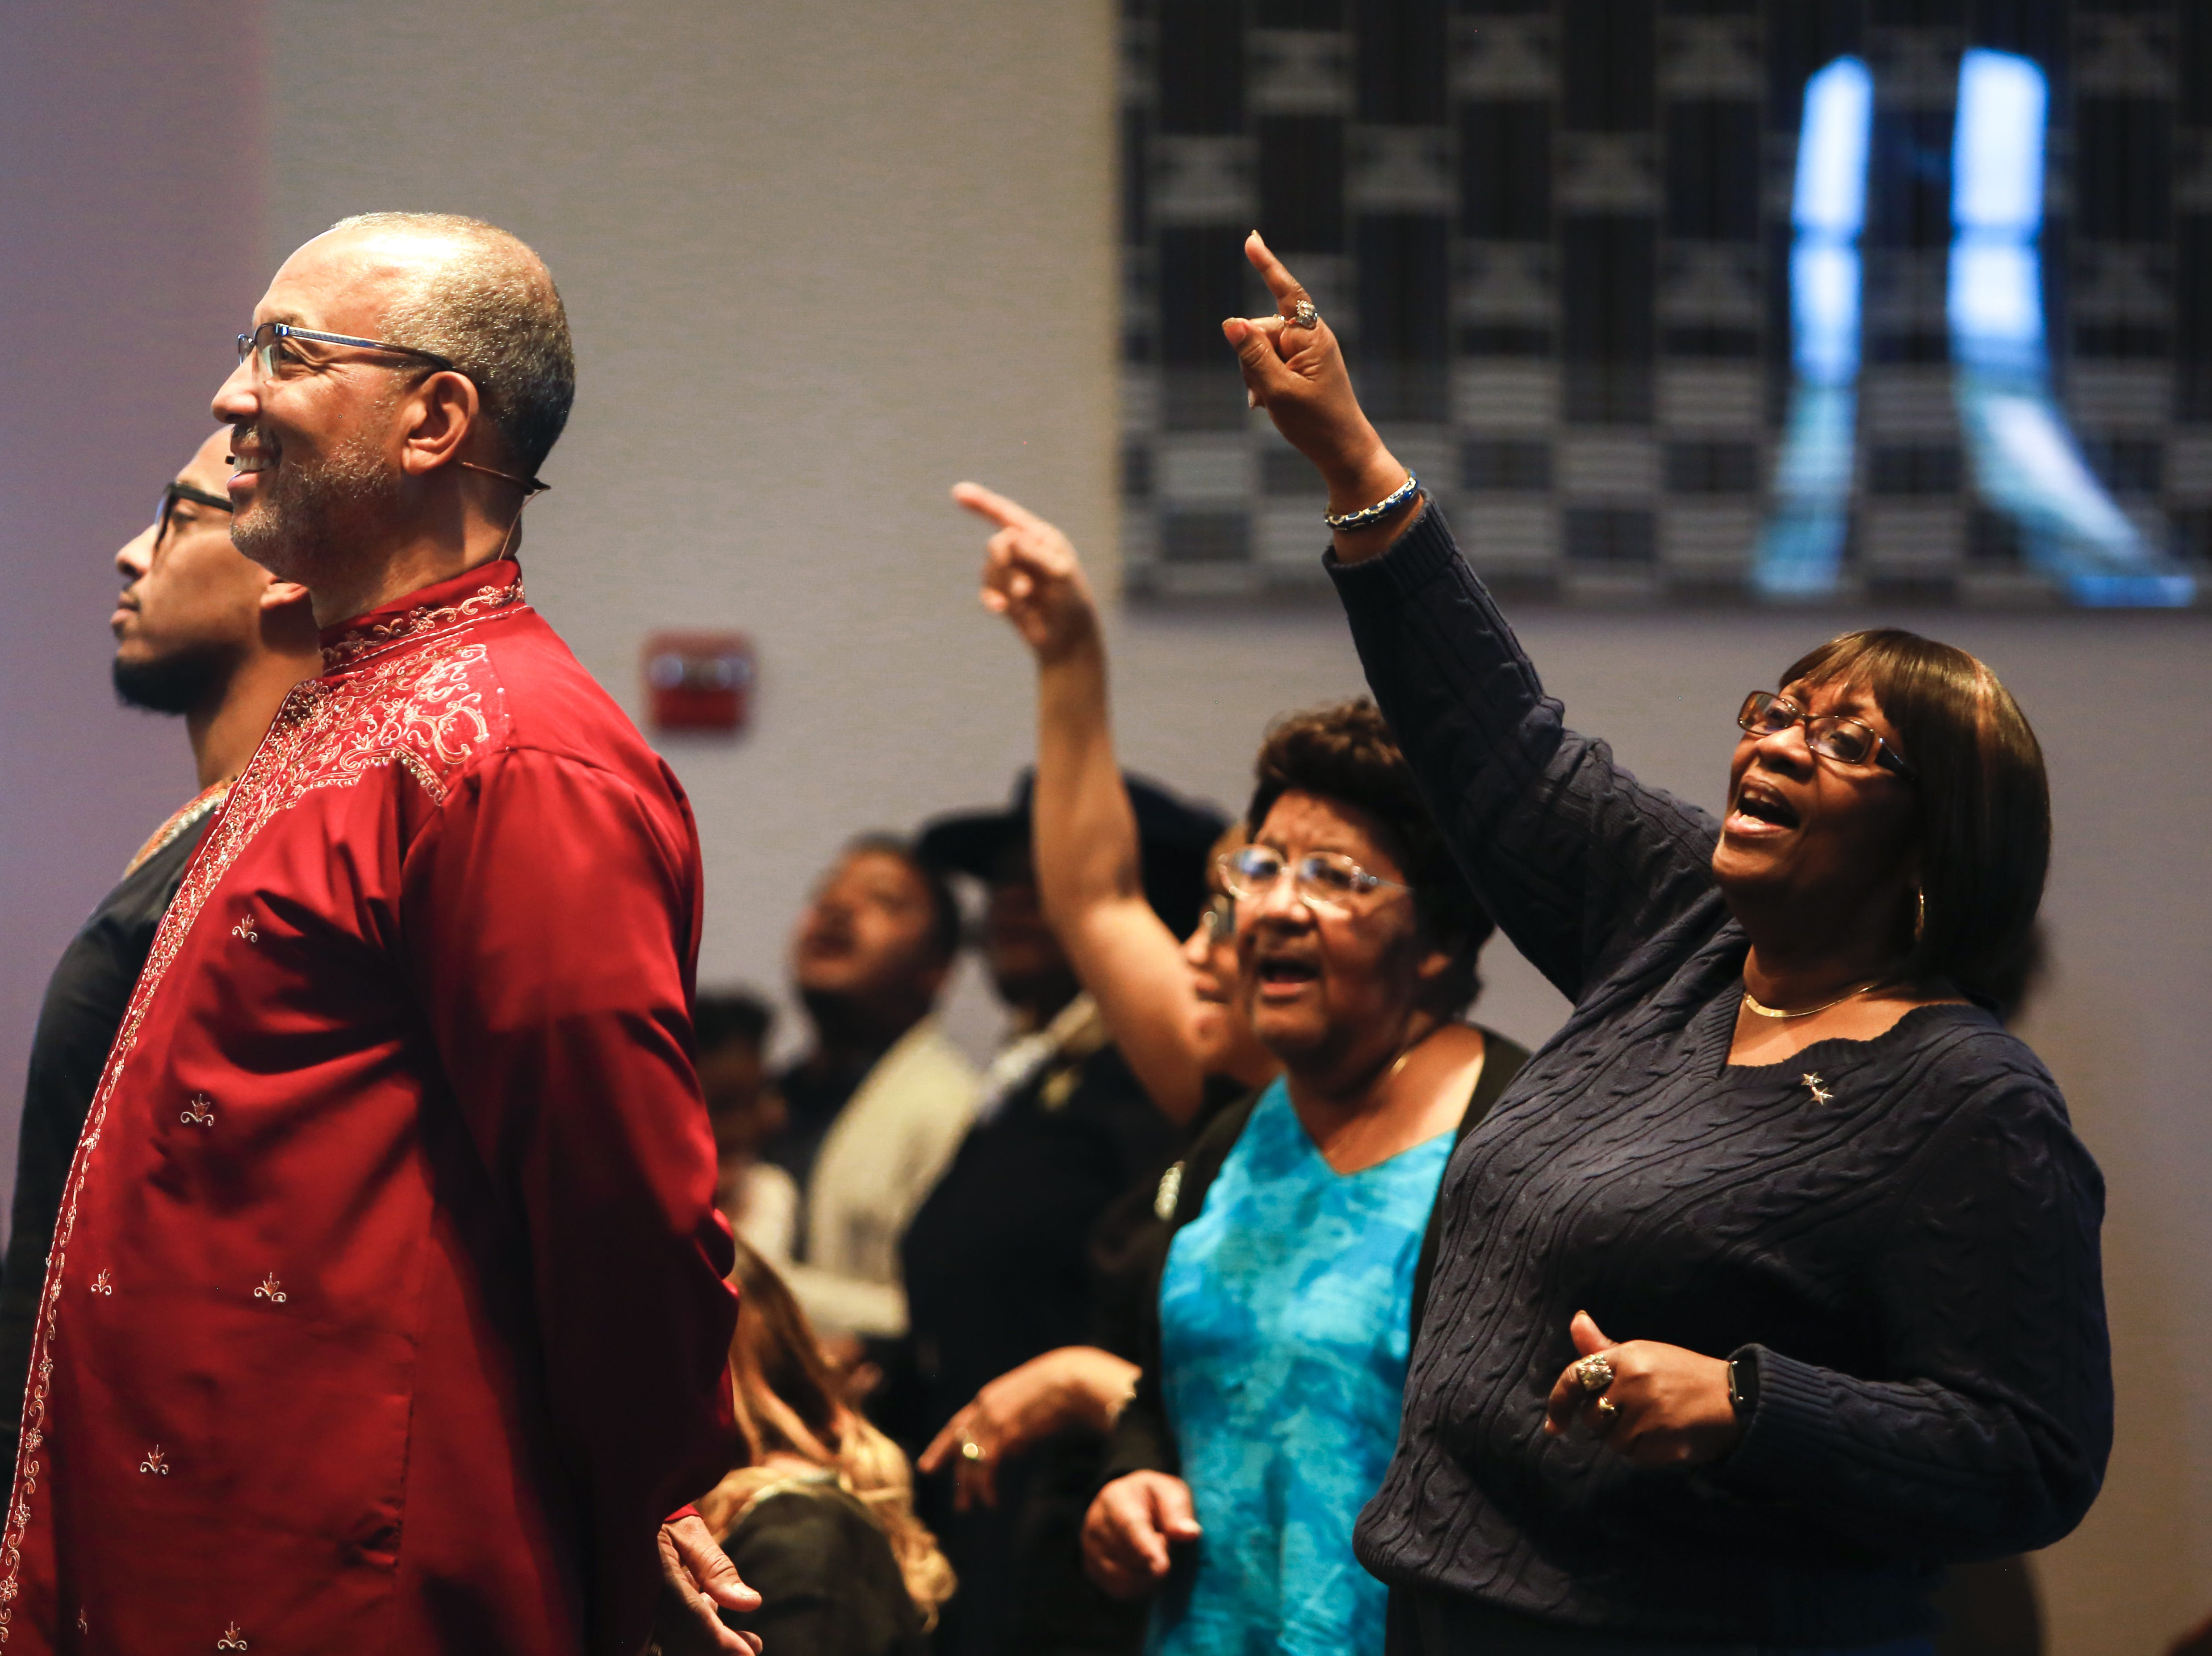 From right, Deloris Pickard, Anita Hopkins, Pastor Warren Stewart and his son Warren Stewart Jr. take part in the service at First Institutional Baptist Church on Sunday, Jan. 20, 2019.